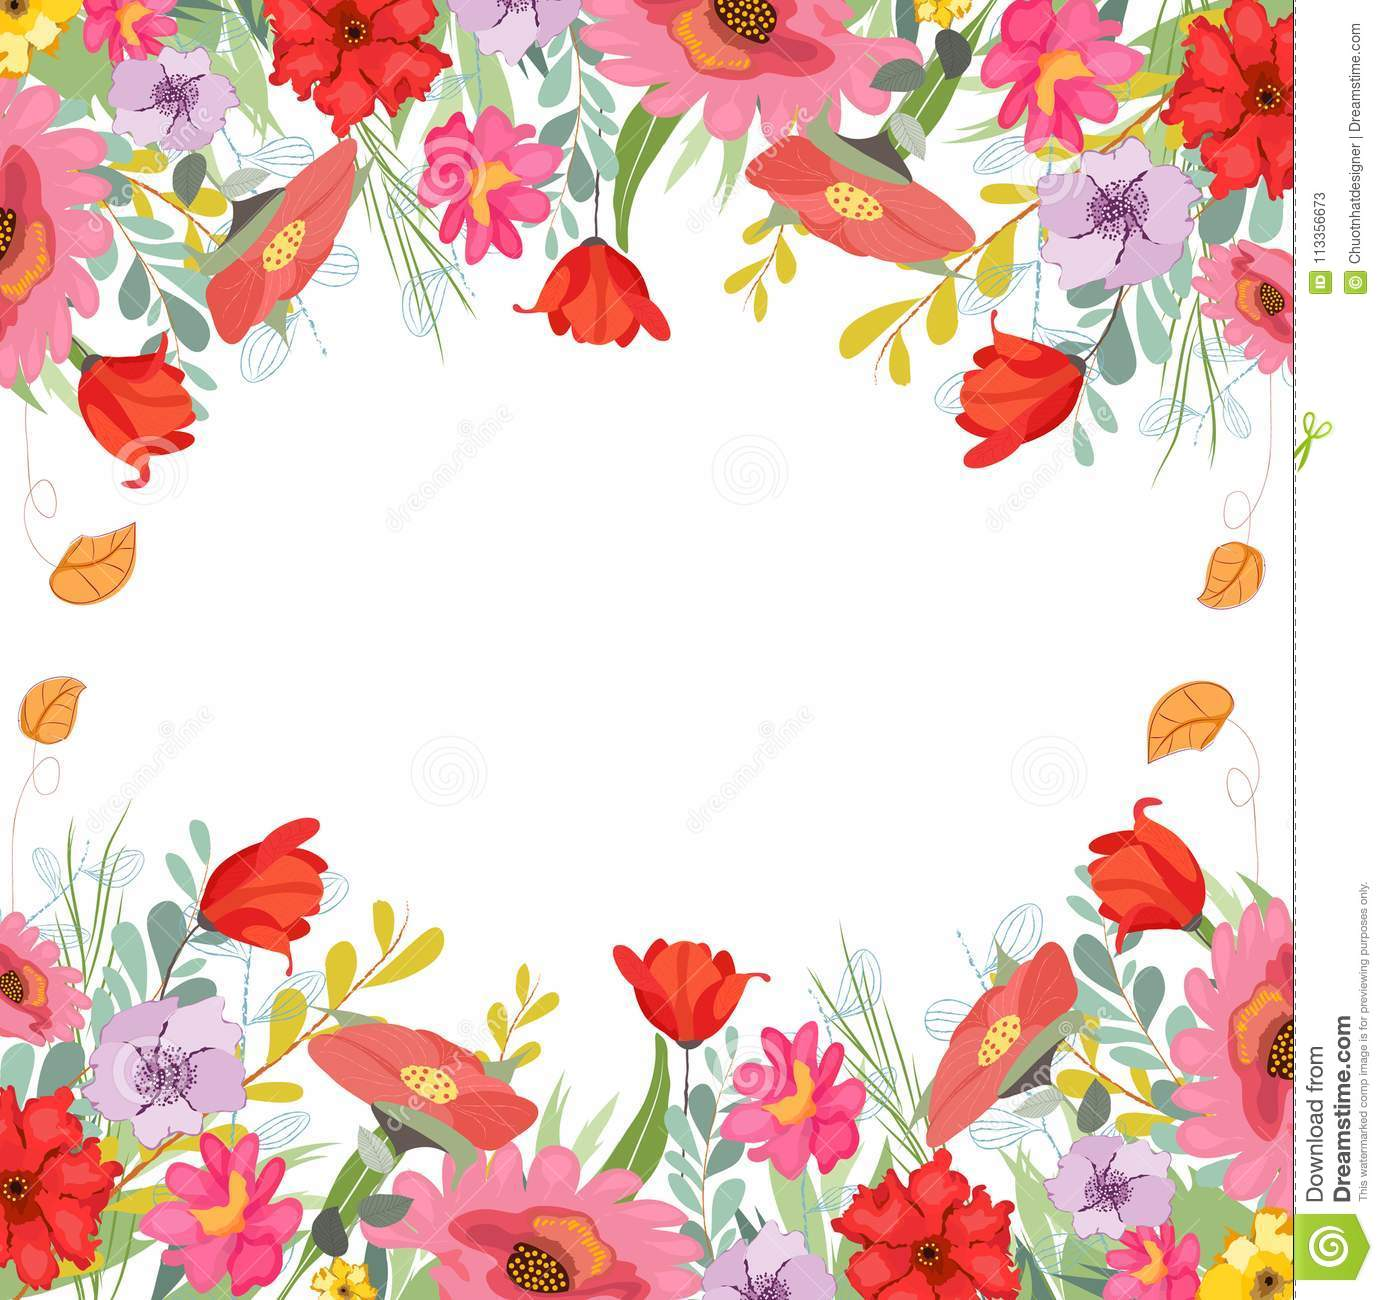 Rustic Floral Cliparts Pretty Flowers Wedding Stock Illustration